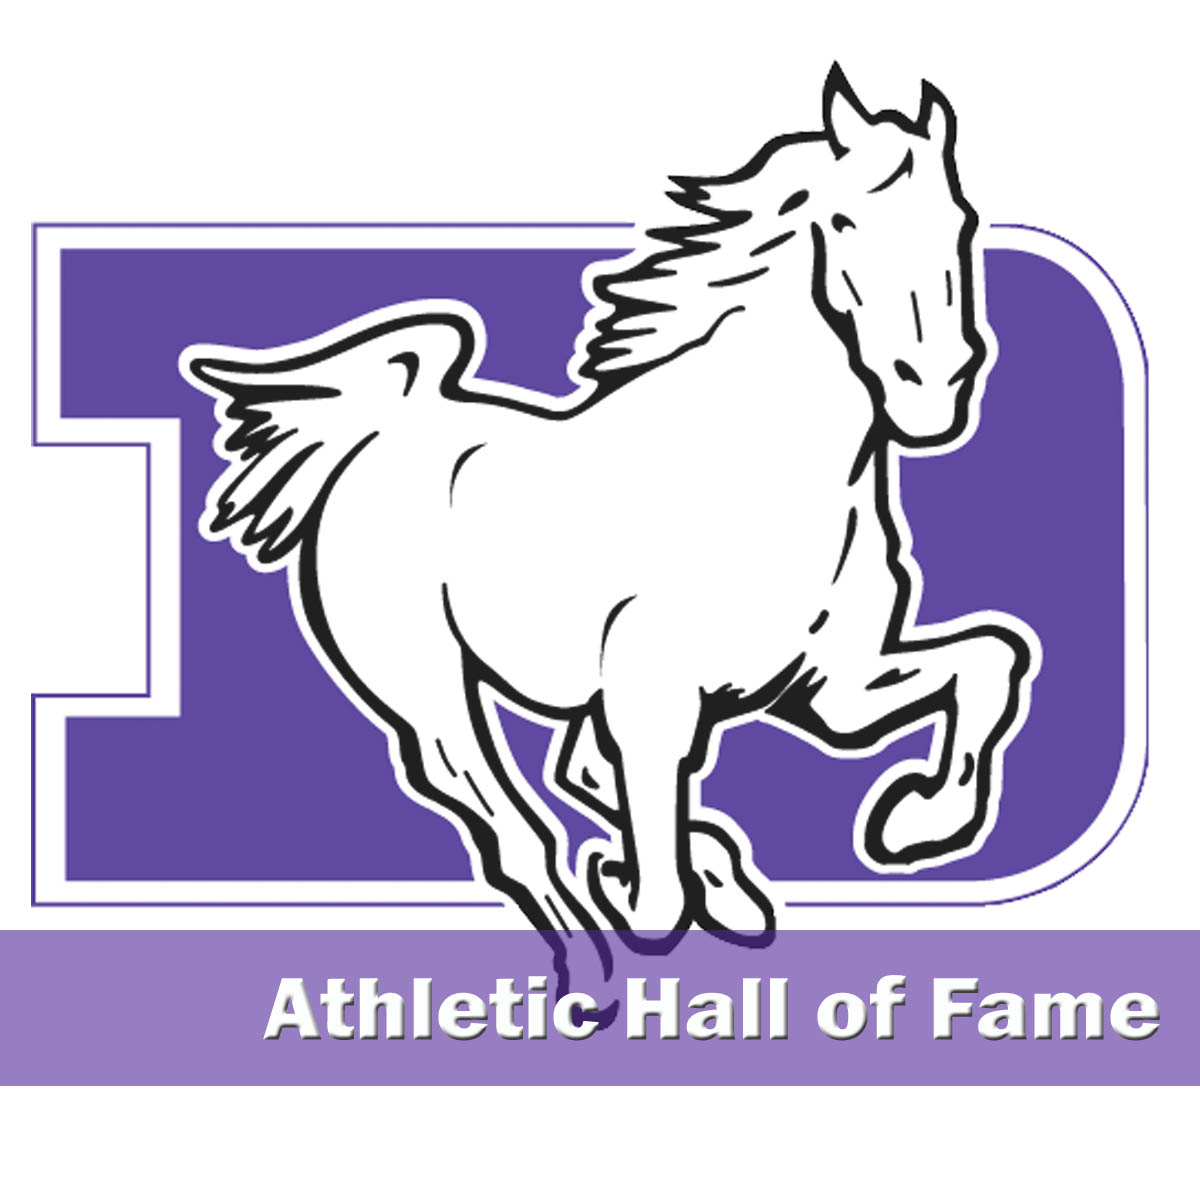 Athletic Hall of Fame.jpg